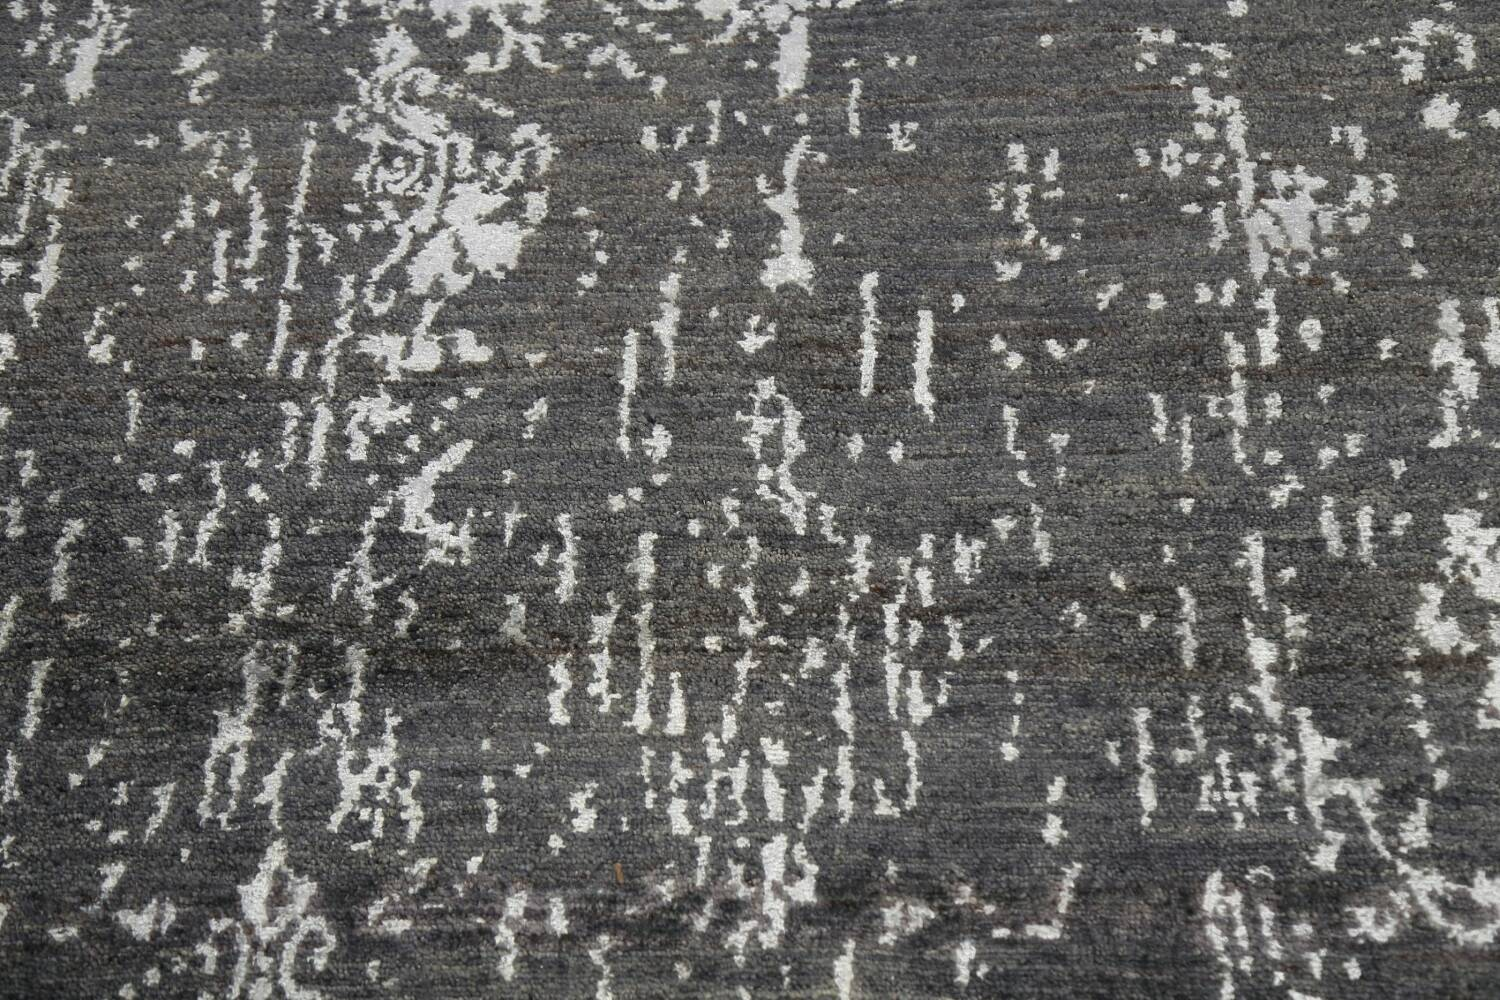 Vegetable Dye Distressed Abstract Oriental Area Rug 6x9 image 10